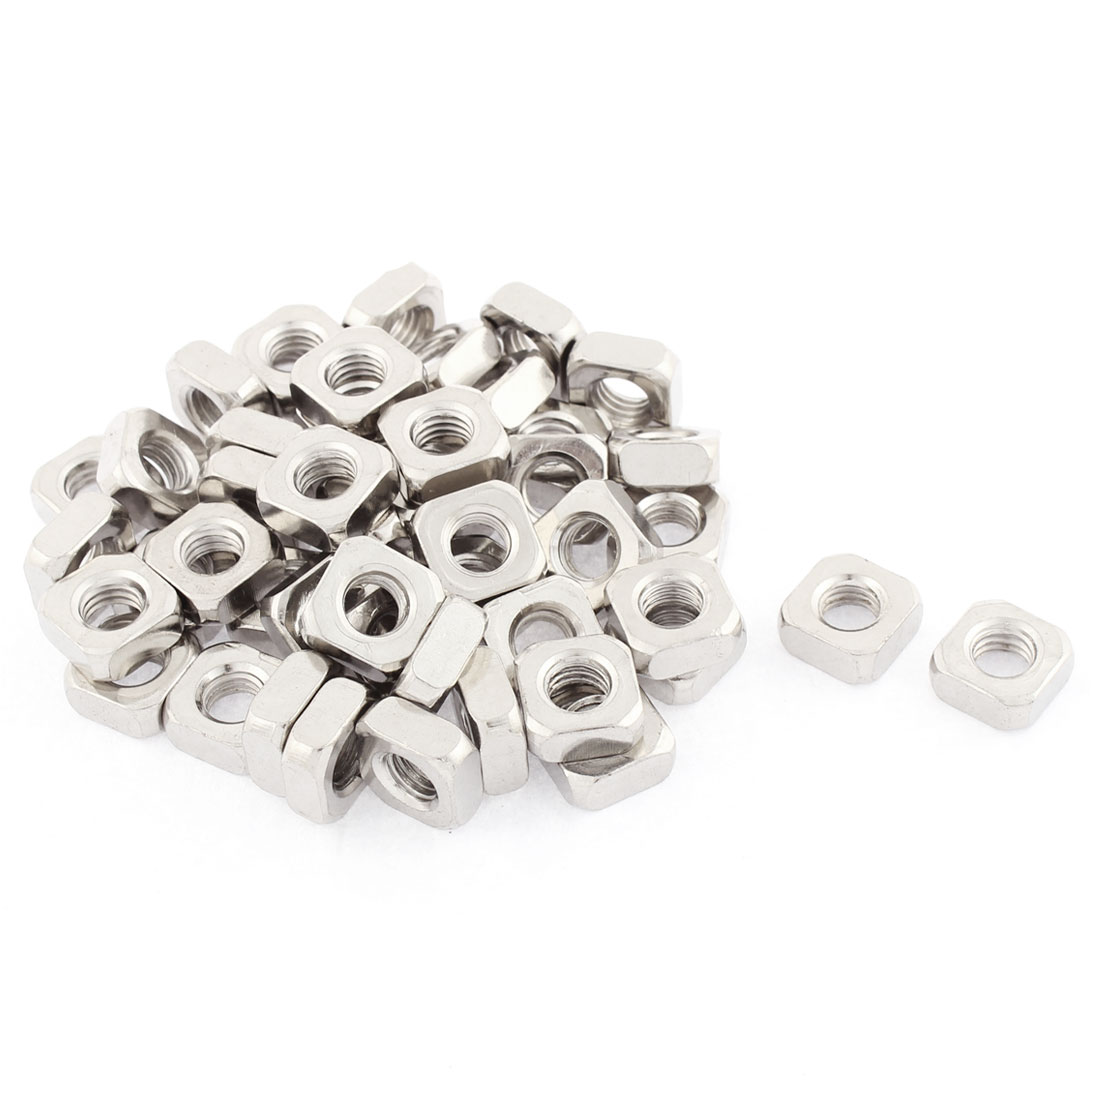 M8x14mmx6mm Metal Square Machine Screw Nuts Silver Tone 50pcs